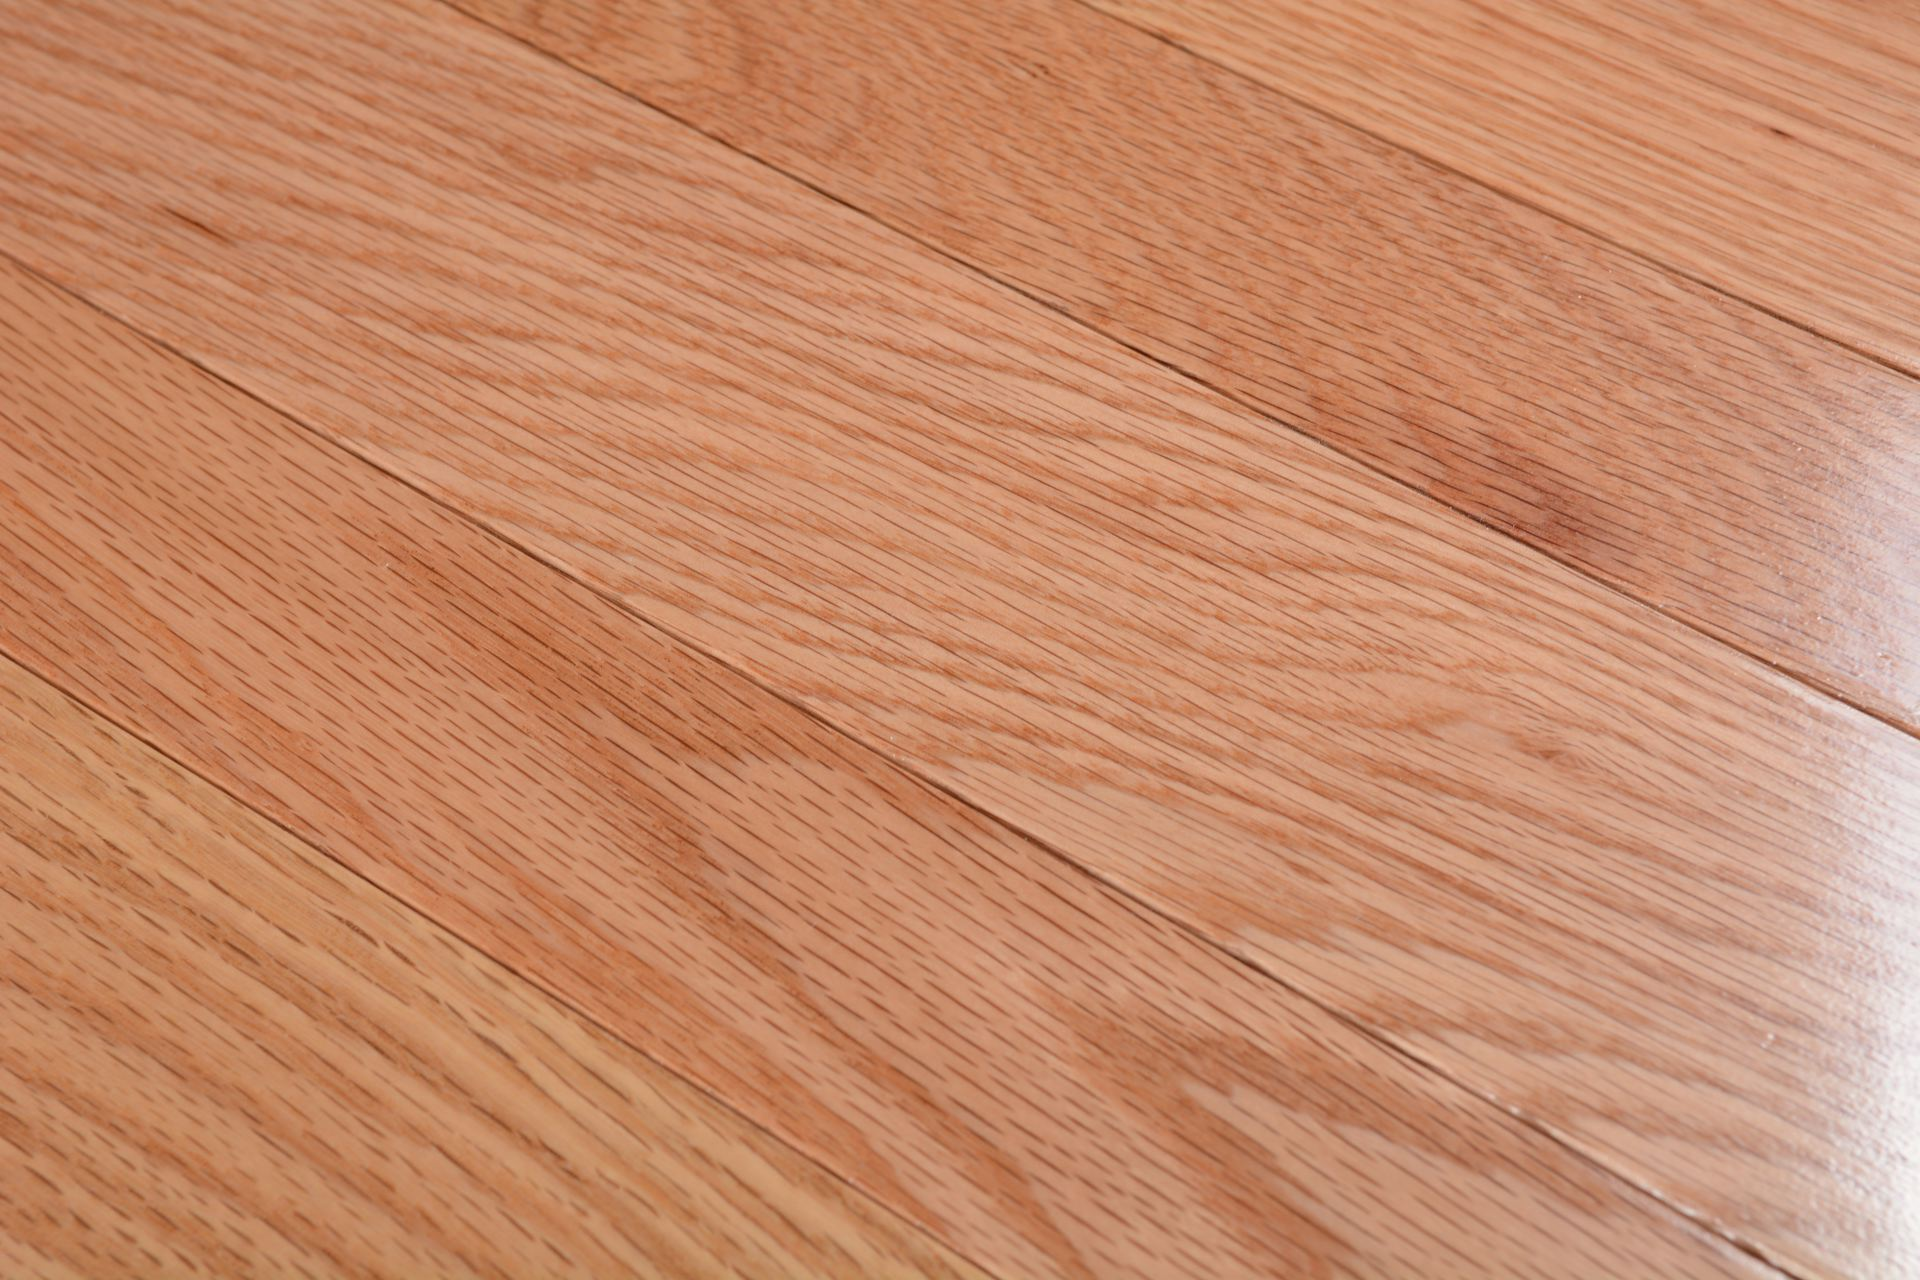 Somerset Solid Smooth High Gloss Collection Red Oak